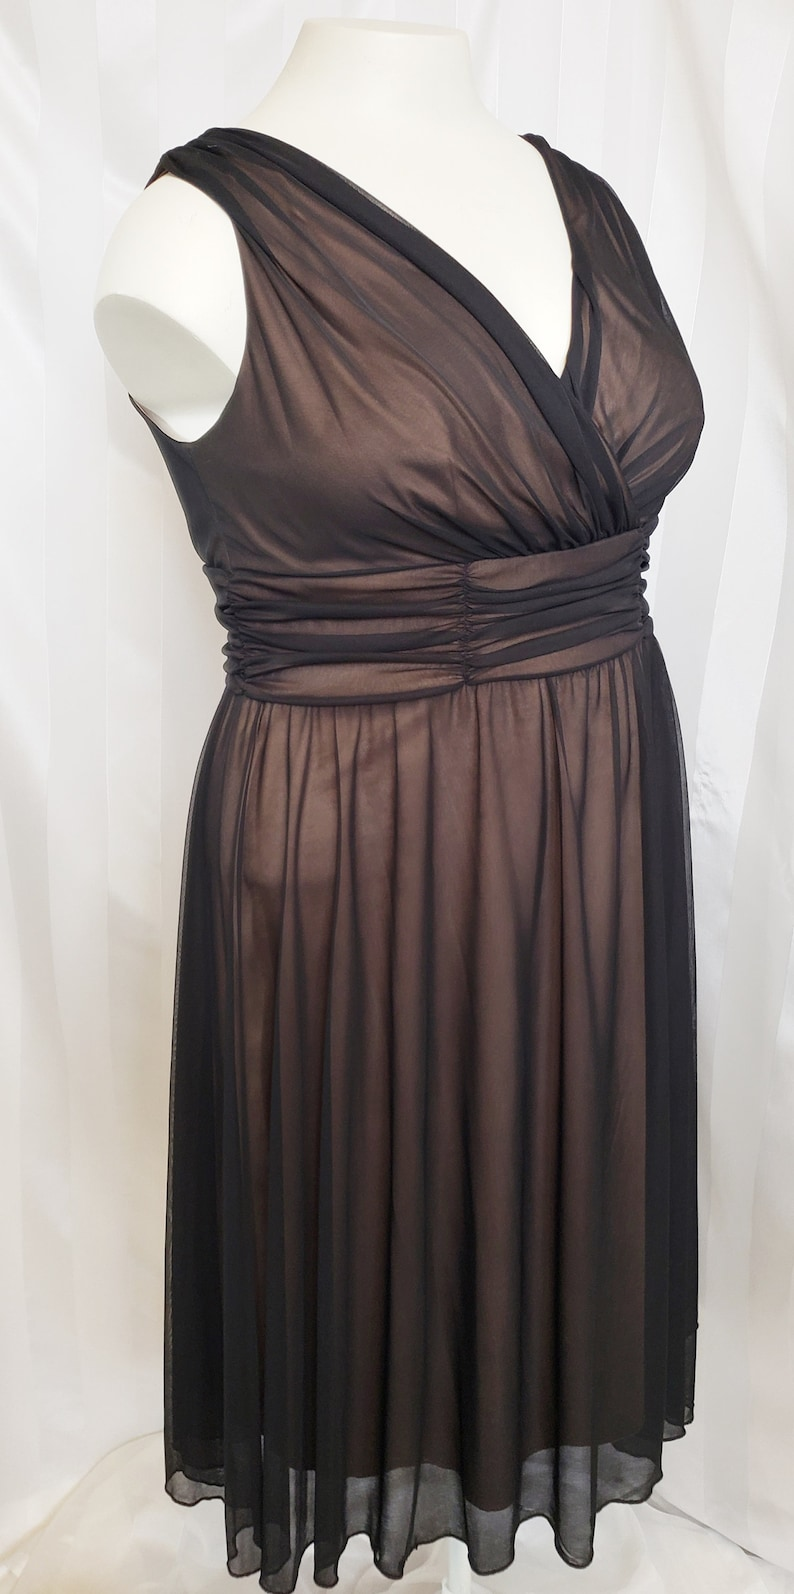 1950s Plus Size Dresses, Swing Dresses 18 Curvy Lady---1950s-style Classic Little Black Dress SZ 18 $78.00 AT vintagedancer.com